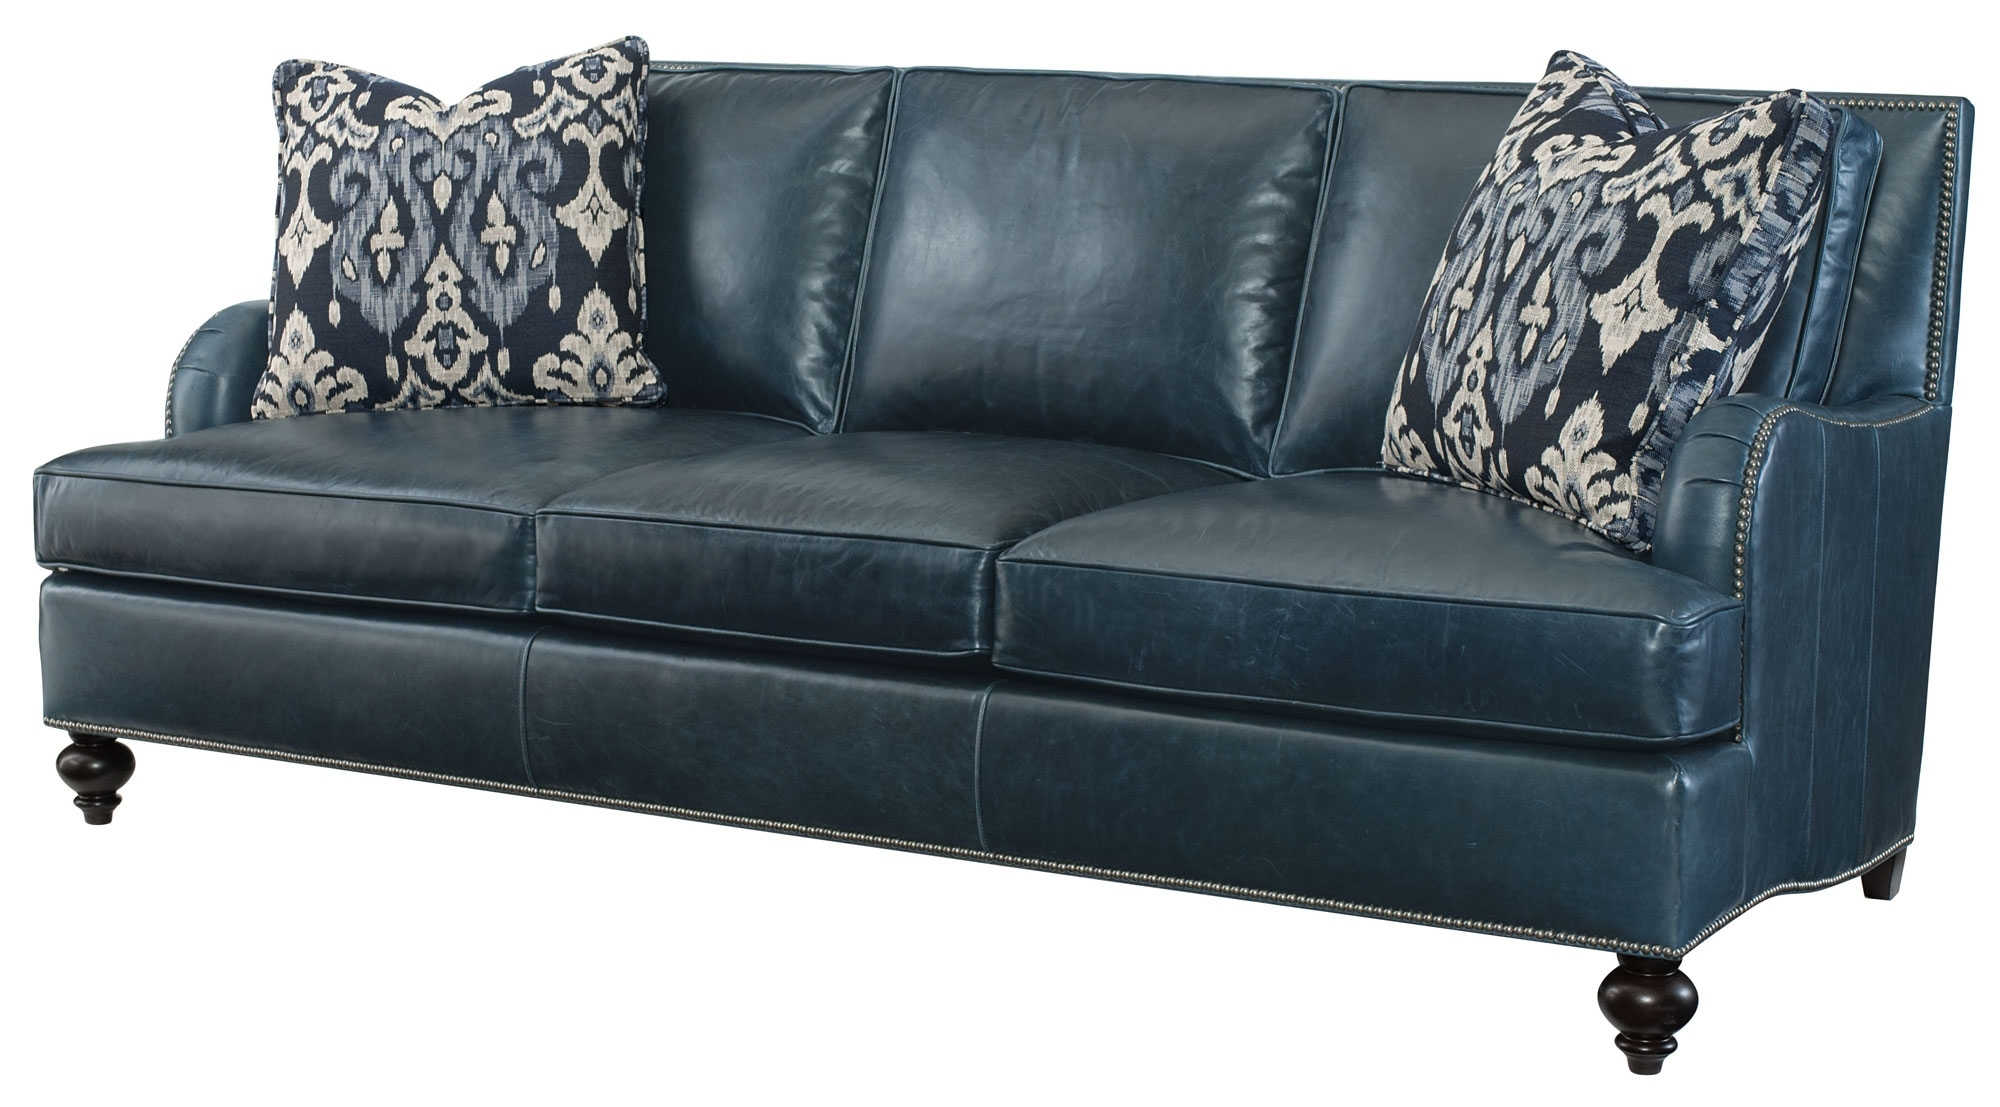 Dillards Sectional Sofas Throughout Famous Chocolate Leather Sofa (Gallery 19 of 20)